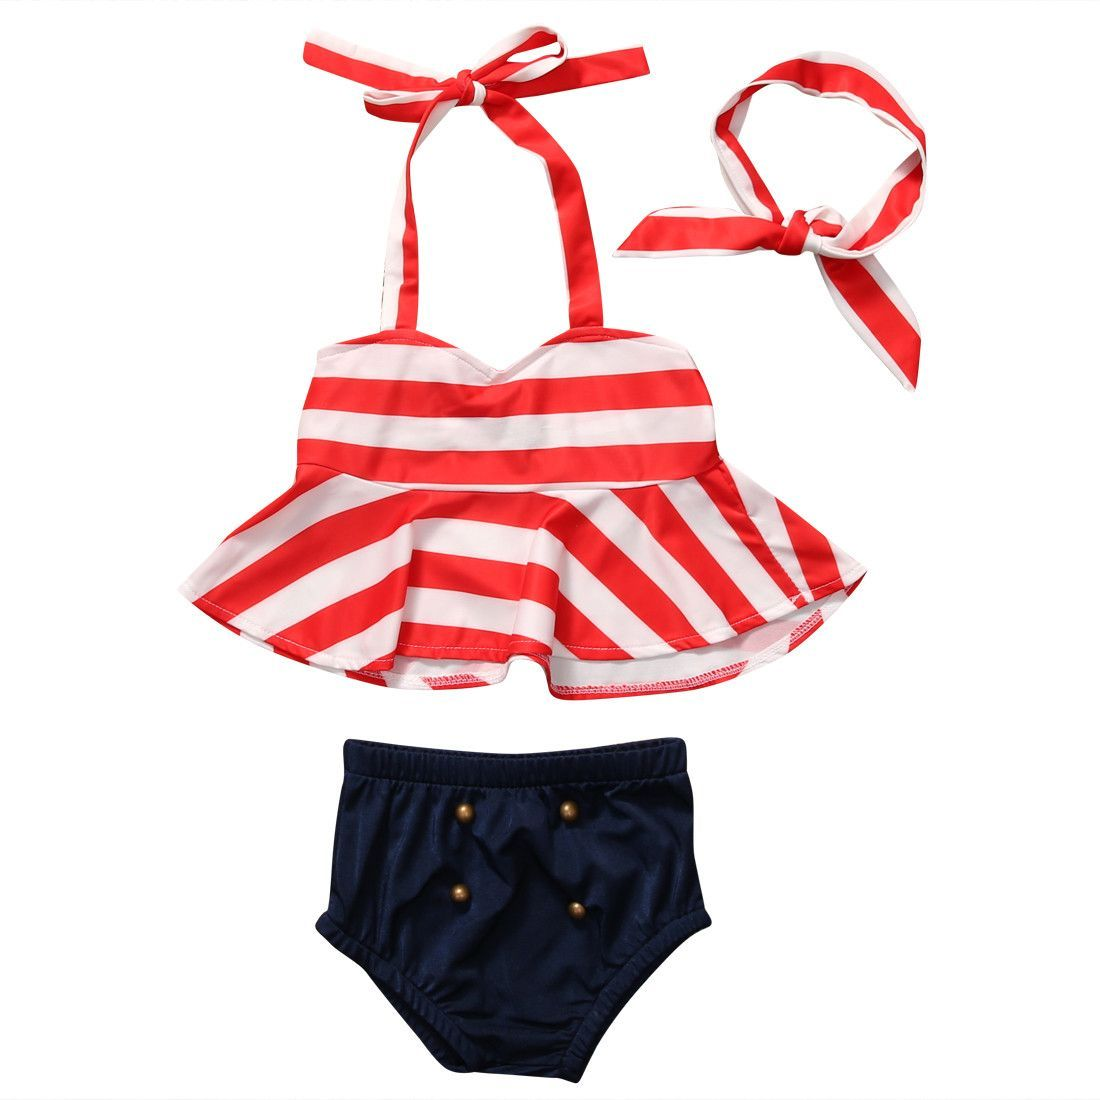 e24879a7c9 children swimwear girls swimwear baby kids biquini infantil swimsuit bikini  girl 2017 New summer bathing suit